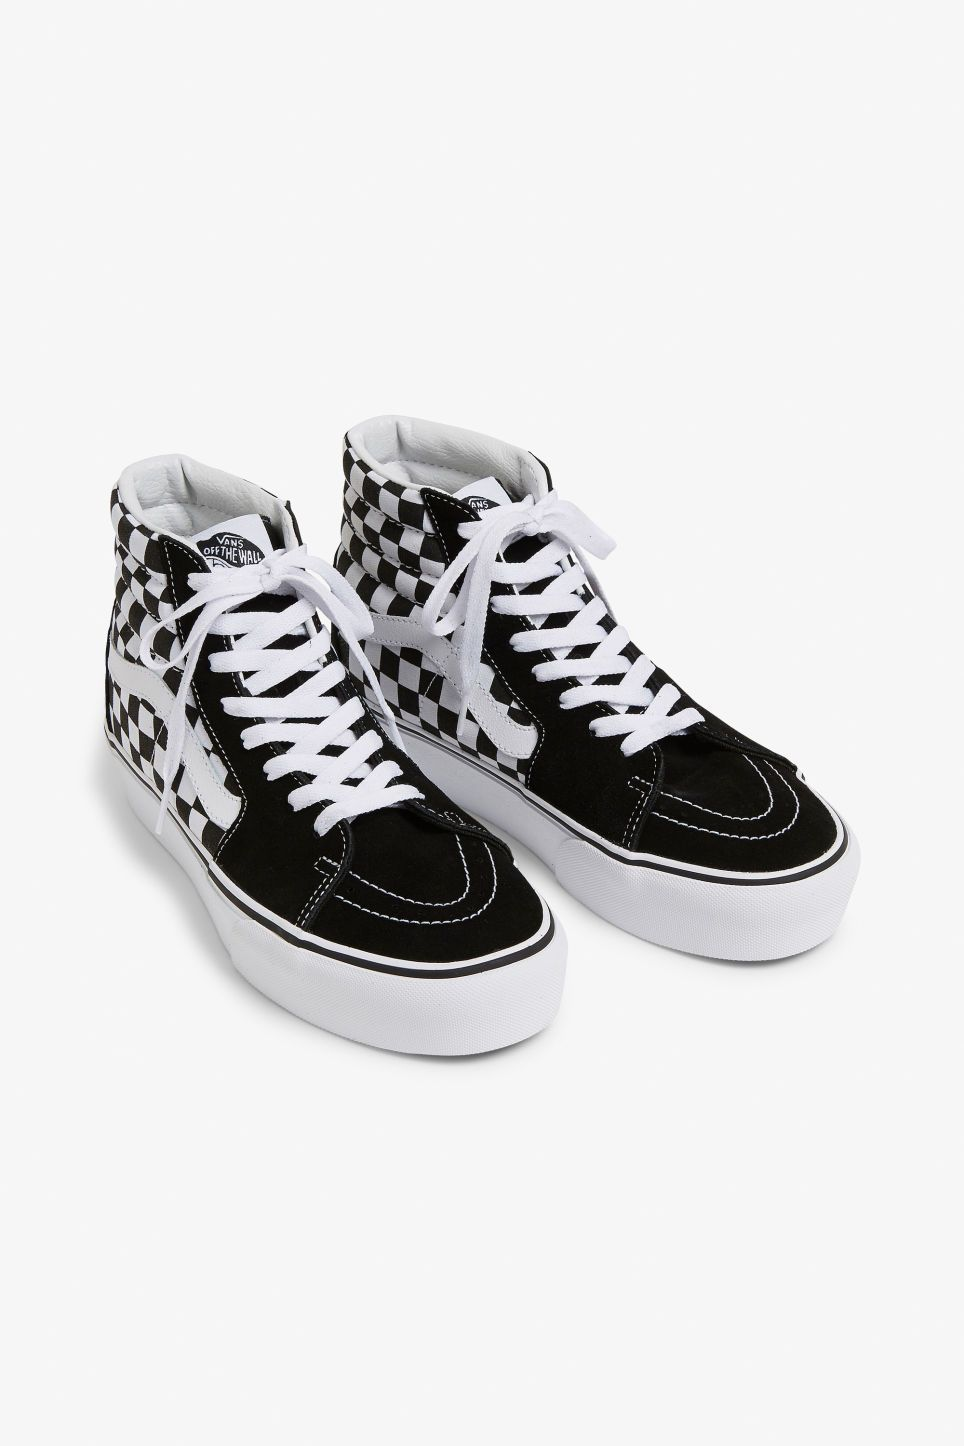 929992a4d2e Vans SK8-HI platform 2.0 - A pair of fab lace-up Vans featuring a high top